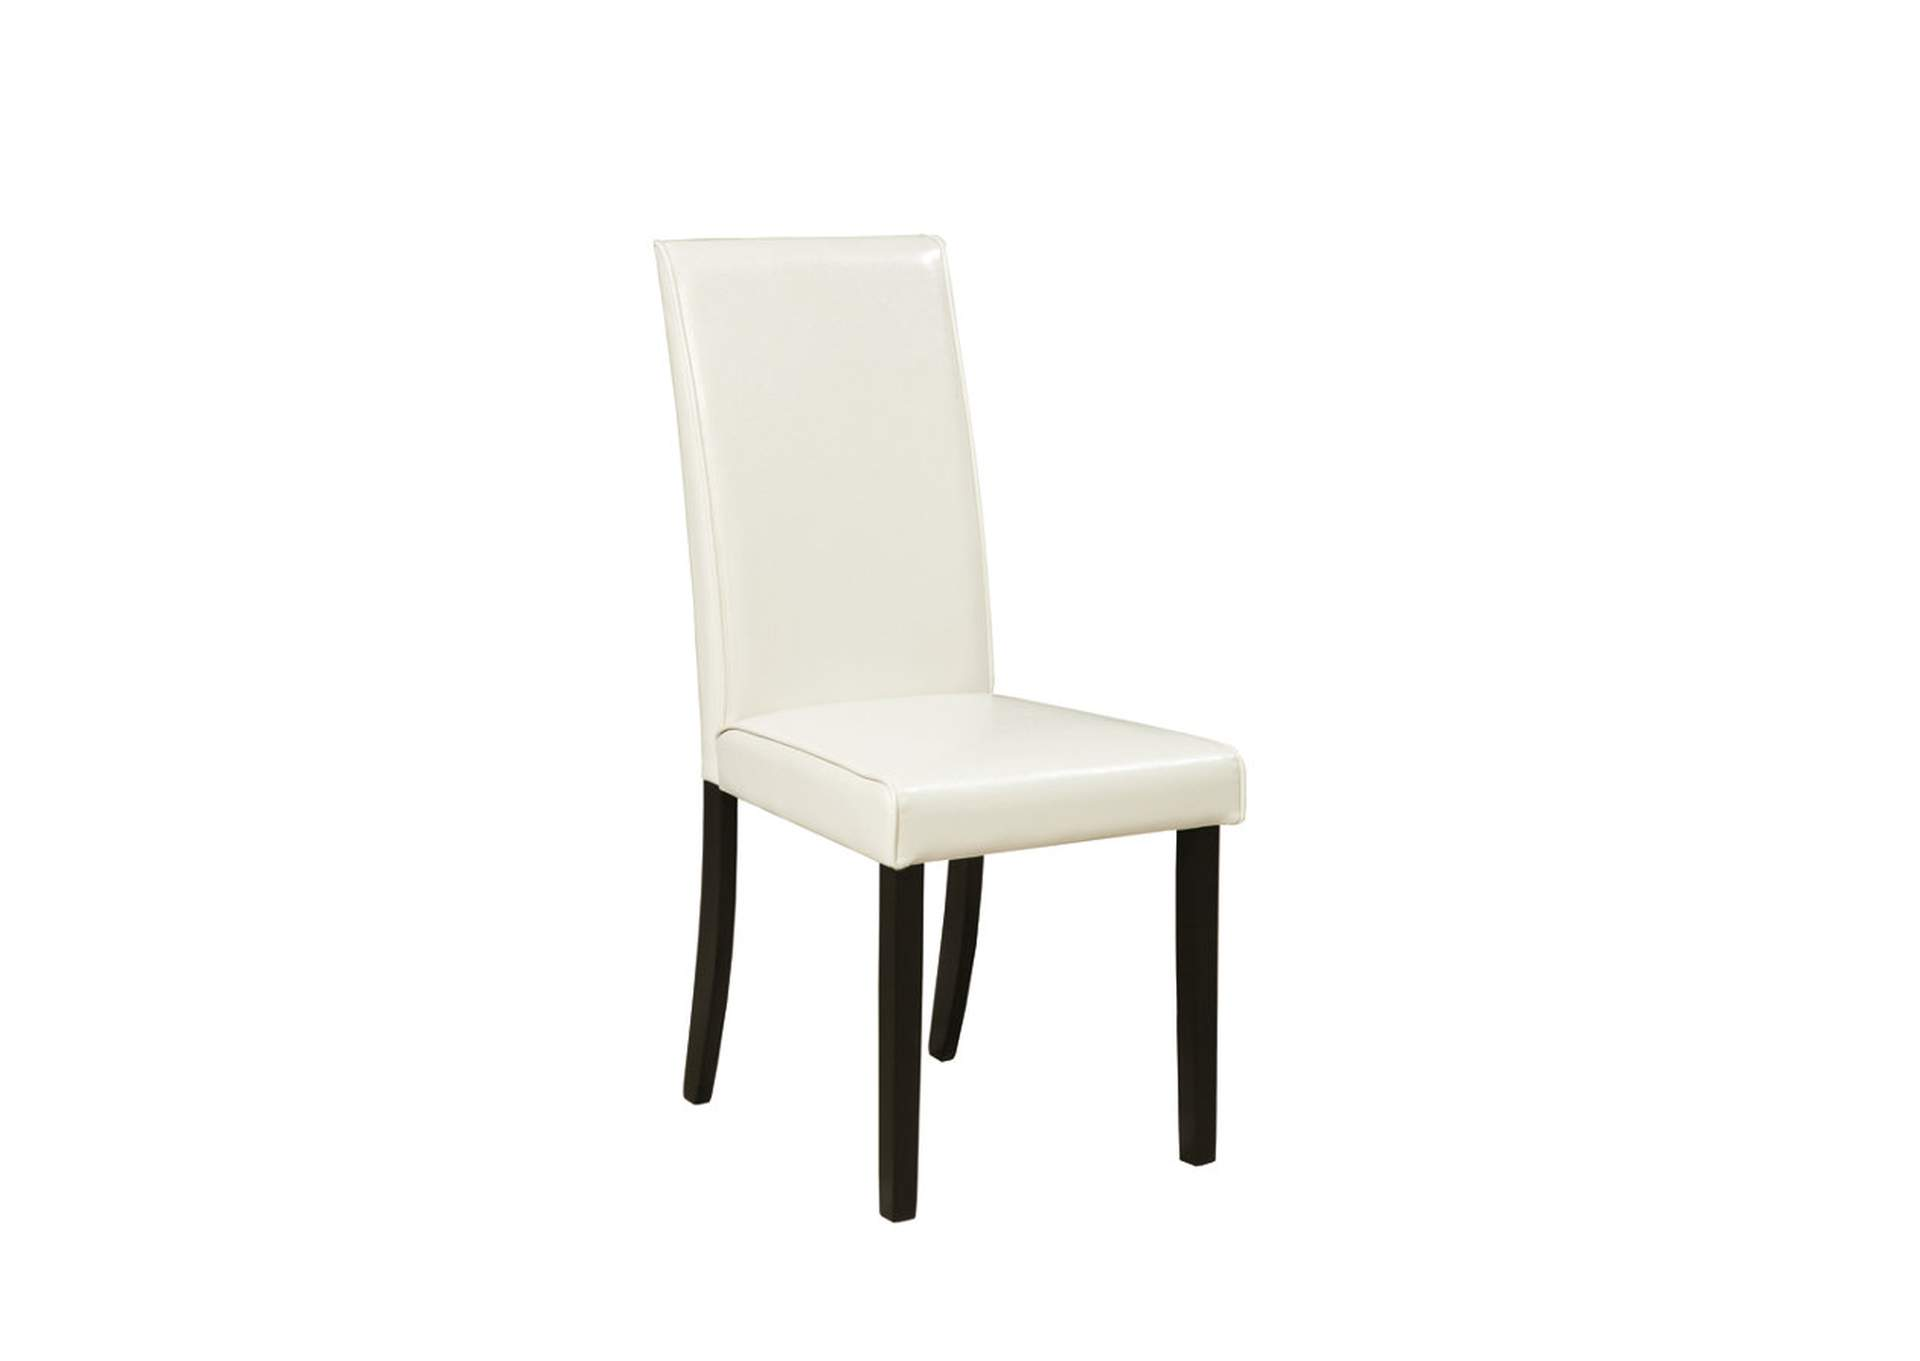 Kimonte Ivory Upholstered Chair (Set of 2),Signature Design By Ashley